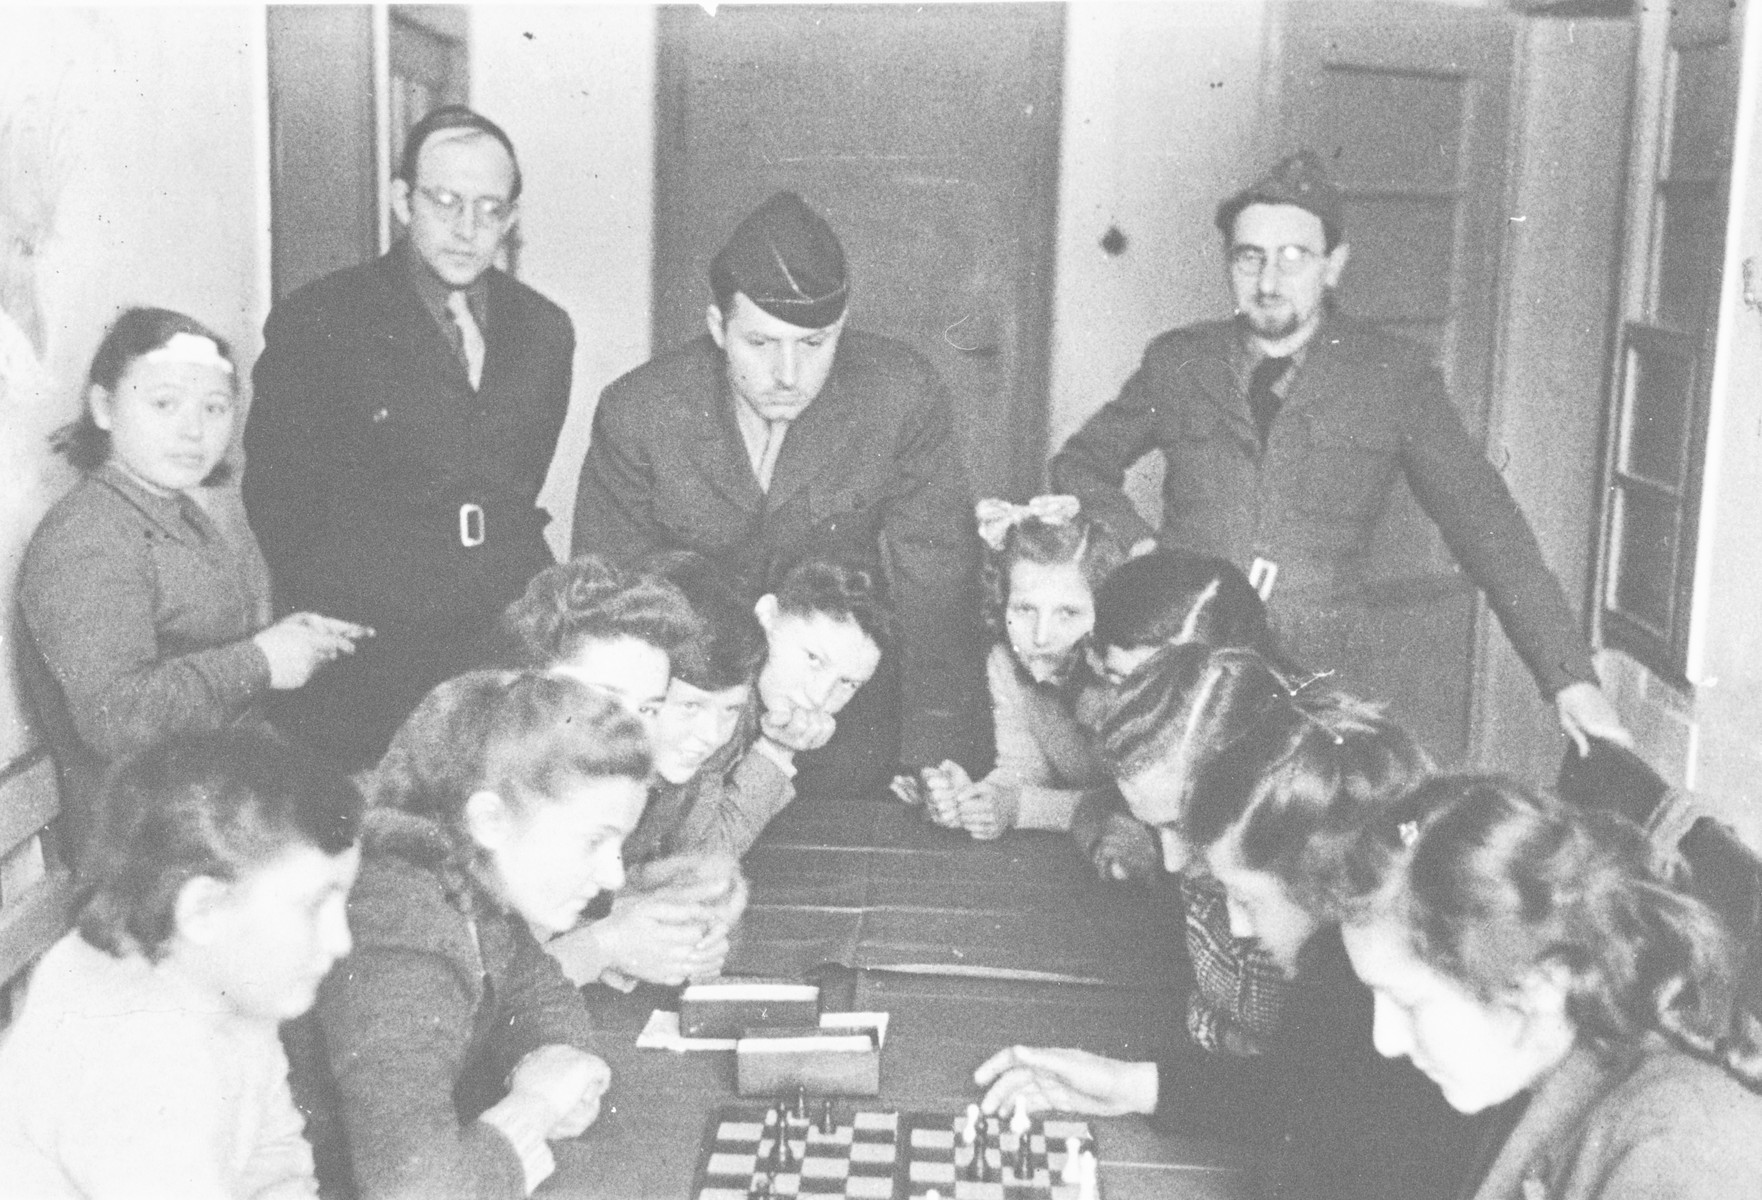 School girls play chess in the Poalei Agudat Yisrael children's home in Ulm run by the Vaad Hatzala while Vaad rabbis look on.  Rabbi Nathan Baruch is in the center and Rabbi Aviezer Burstin is standing on the right.